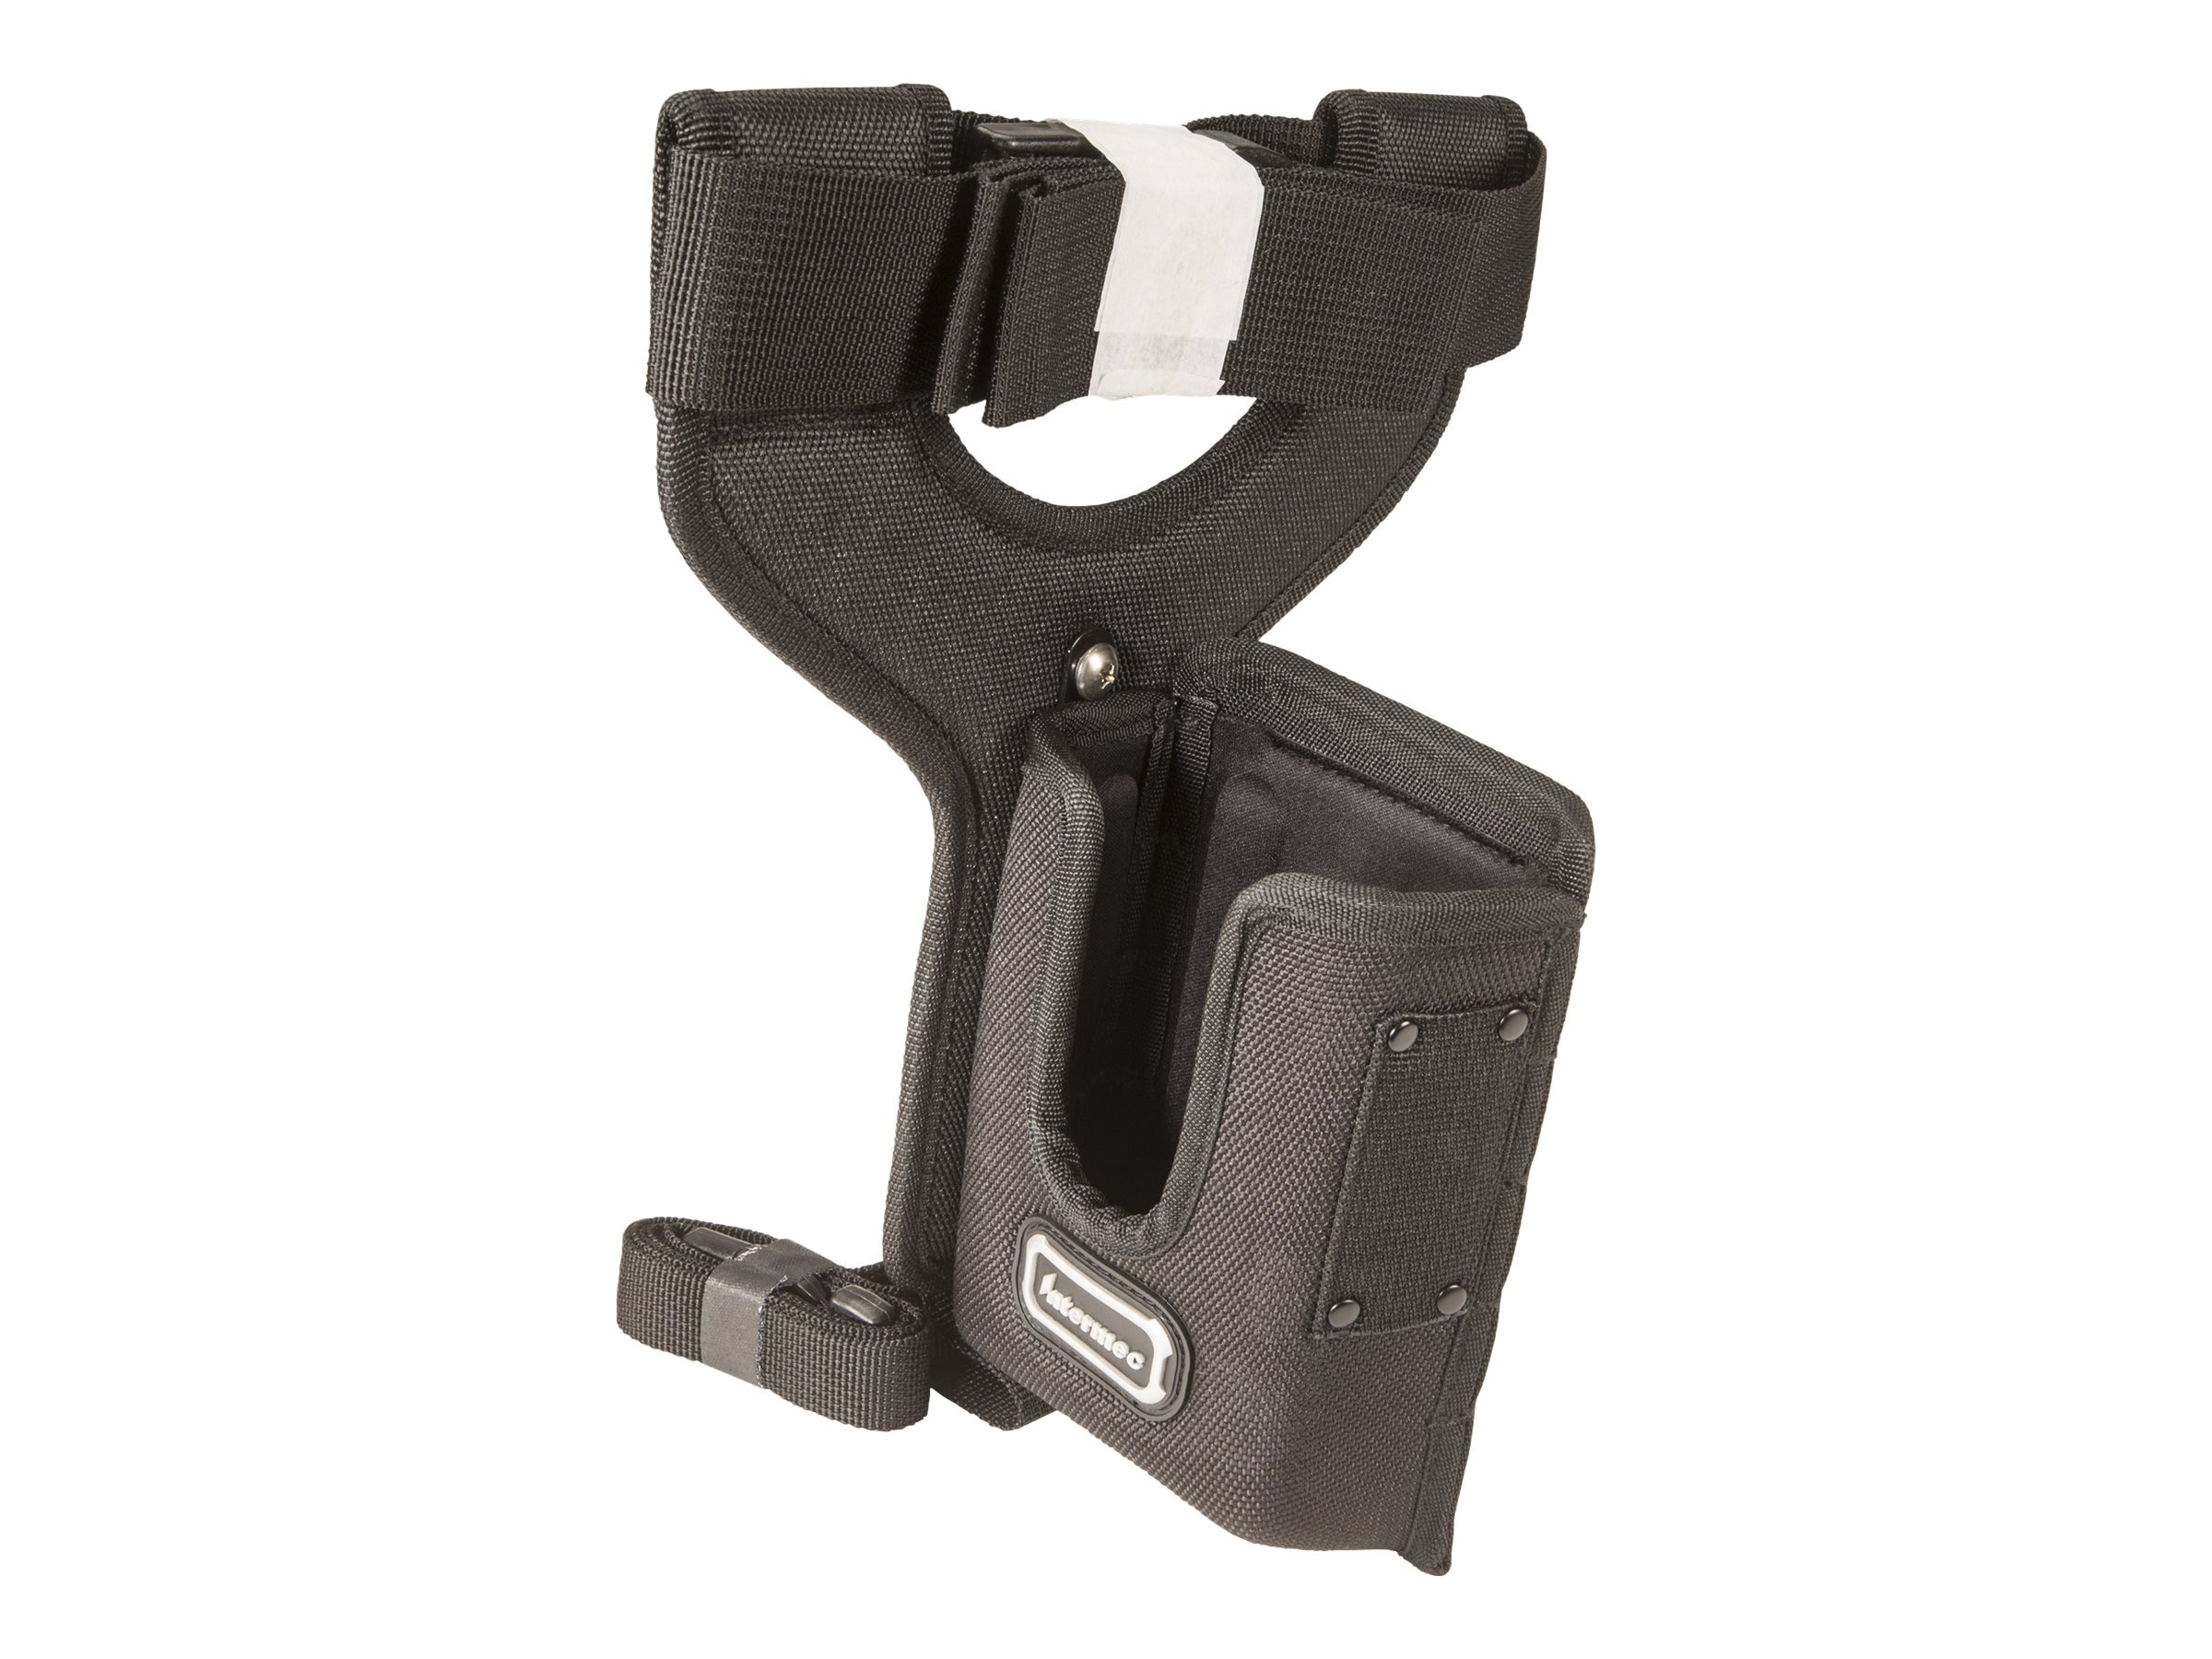 Intermec Holster, Nylon, for CN51 Scan Handle, 815-090-001, 16465523, Carrying Cases - Other